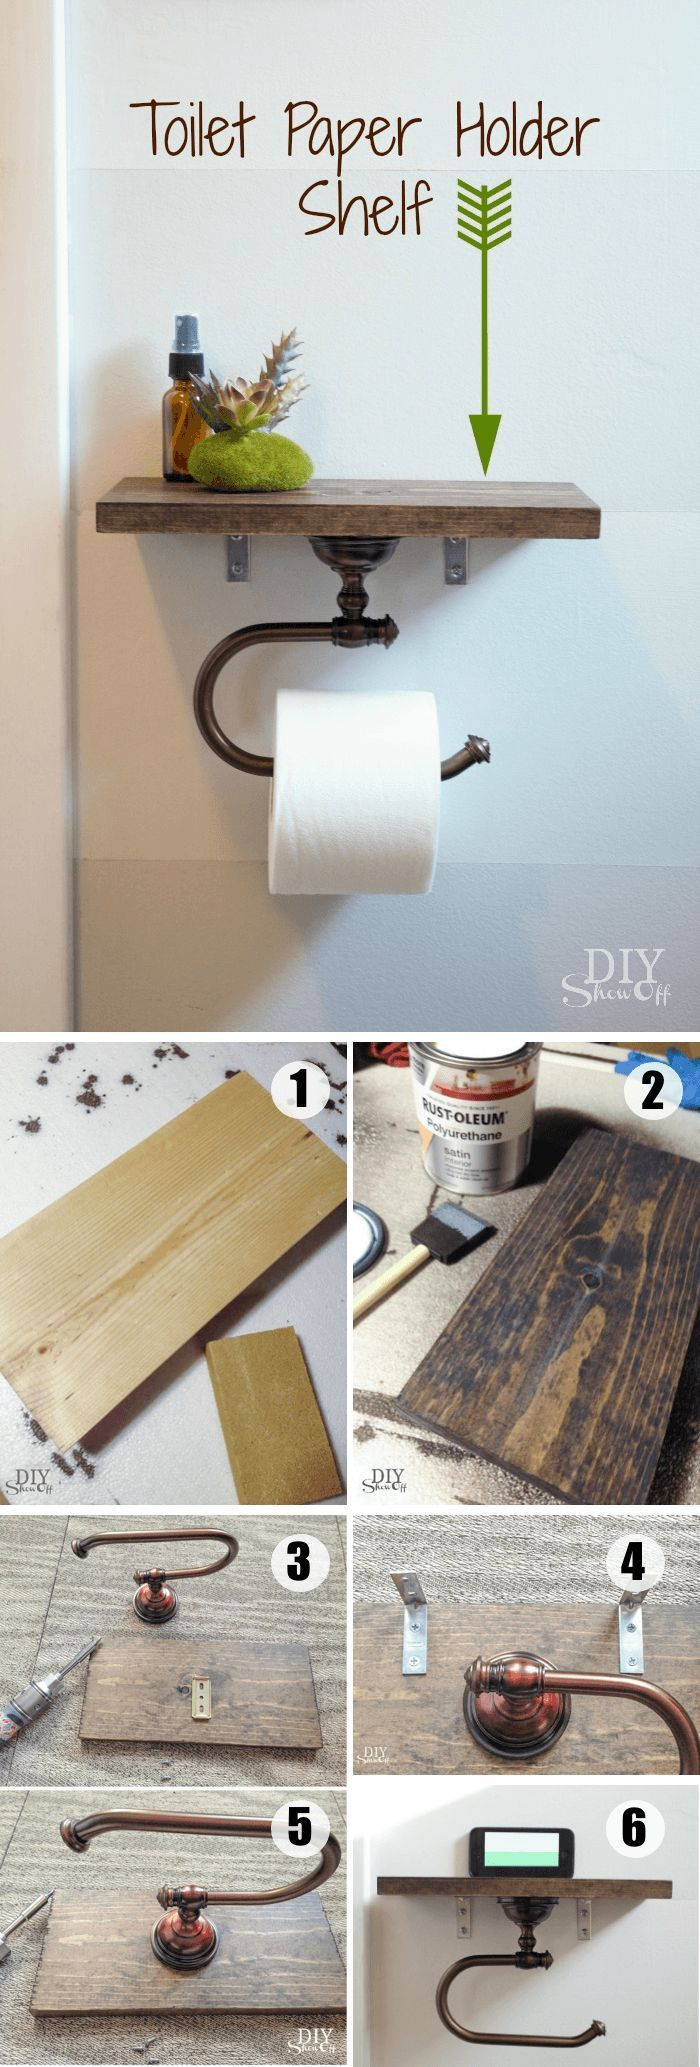 25 best ideas about diy bathroom decor on pinterest bathroom storage diy apartment bathroom decorating and diy bathroom remodel - Diy Bathroom Decor